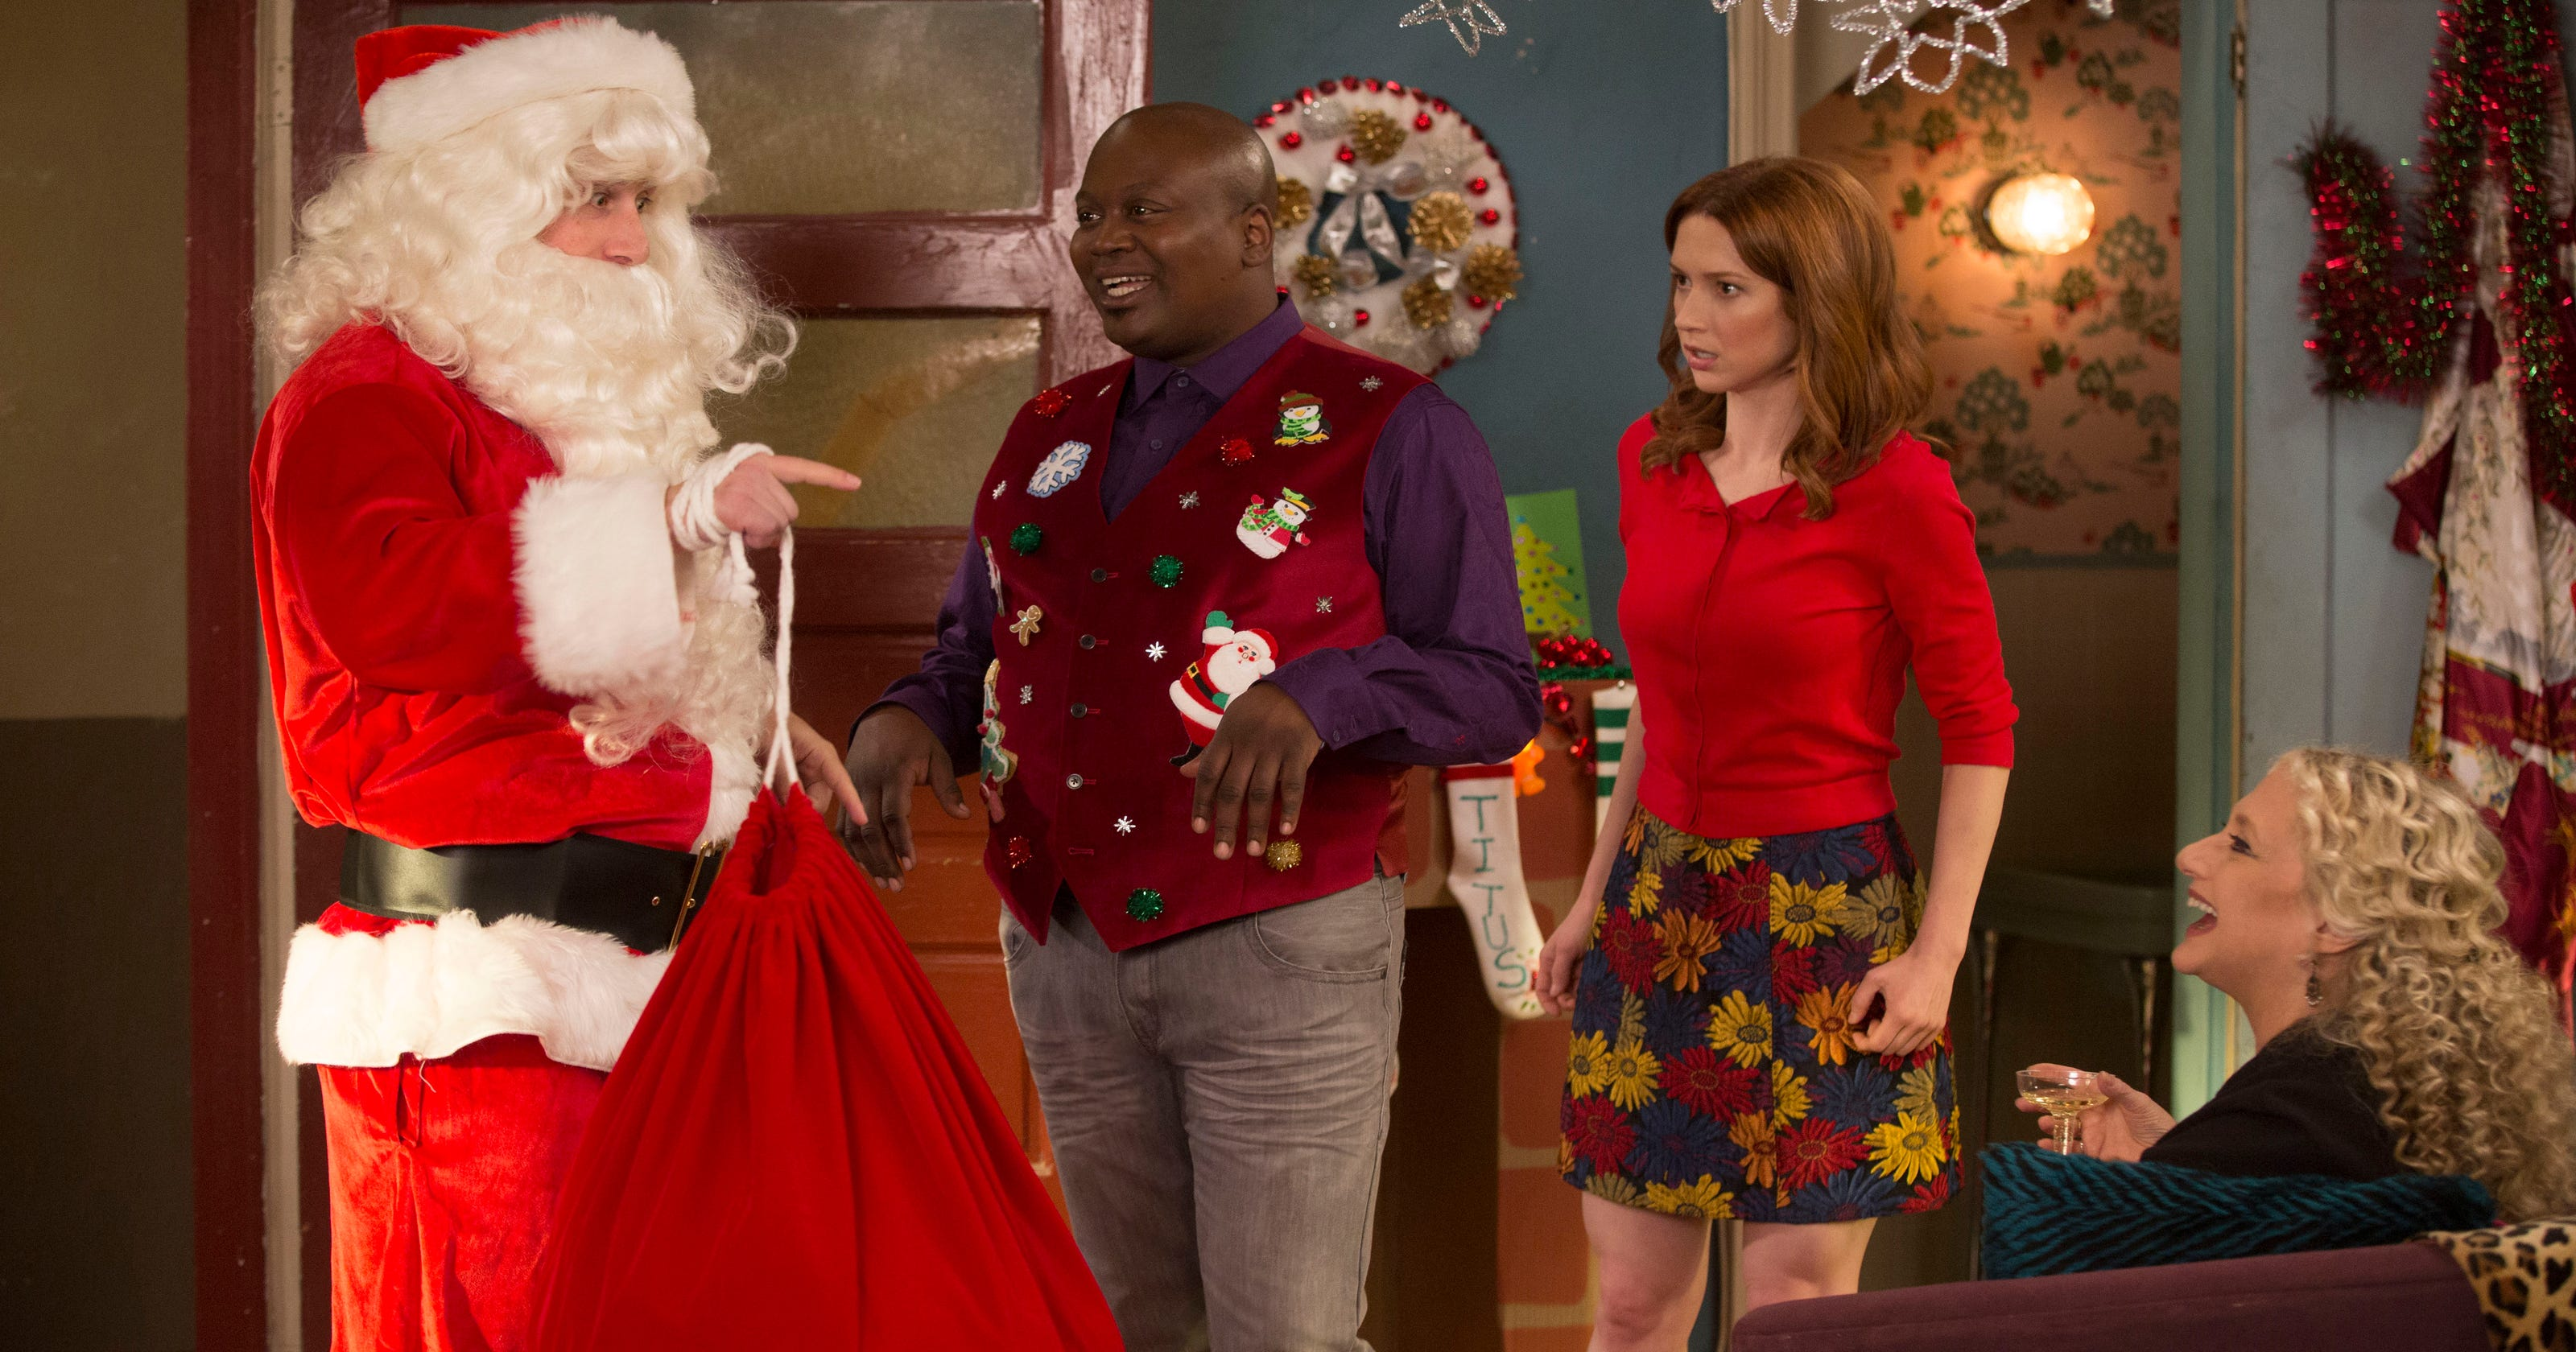 Amy Sedaris Kimmy Schmidt on set: 'kimmy schmidt' expands her world as quirky netflix